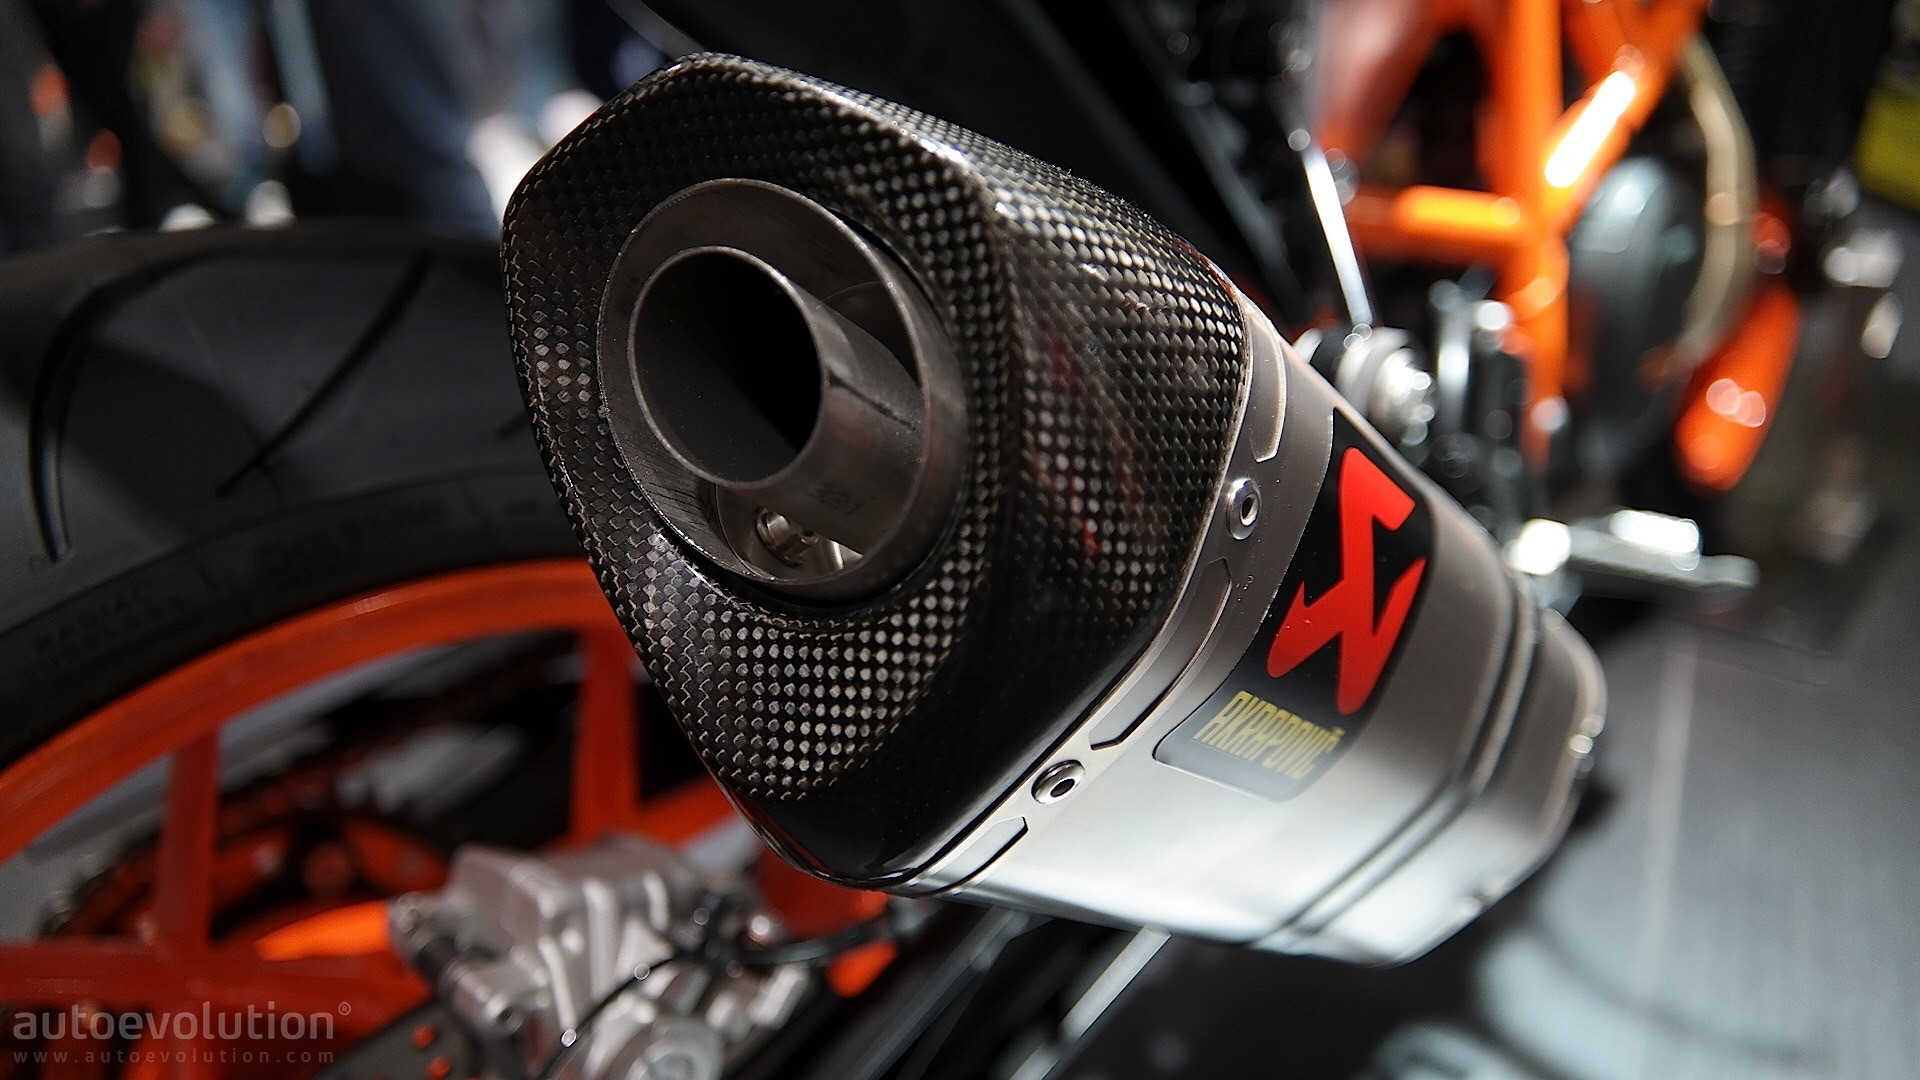 Eicma 2015 Ktm Duke 690 690r Get More Power Extra Goodies For 2016 Autoevolution